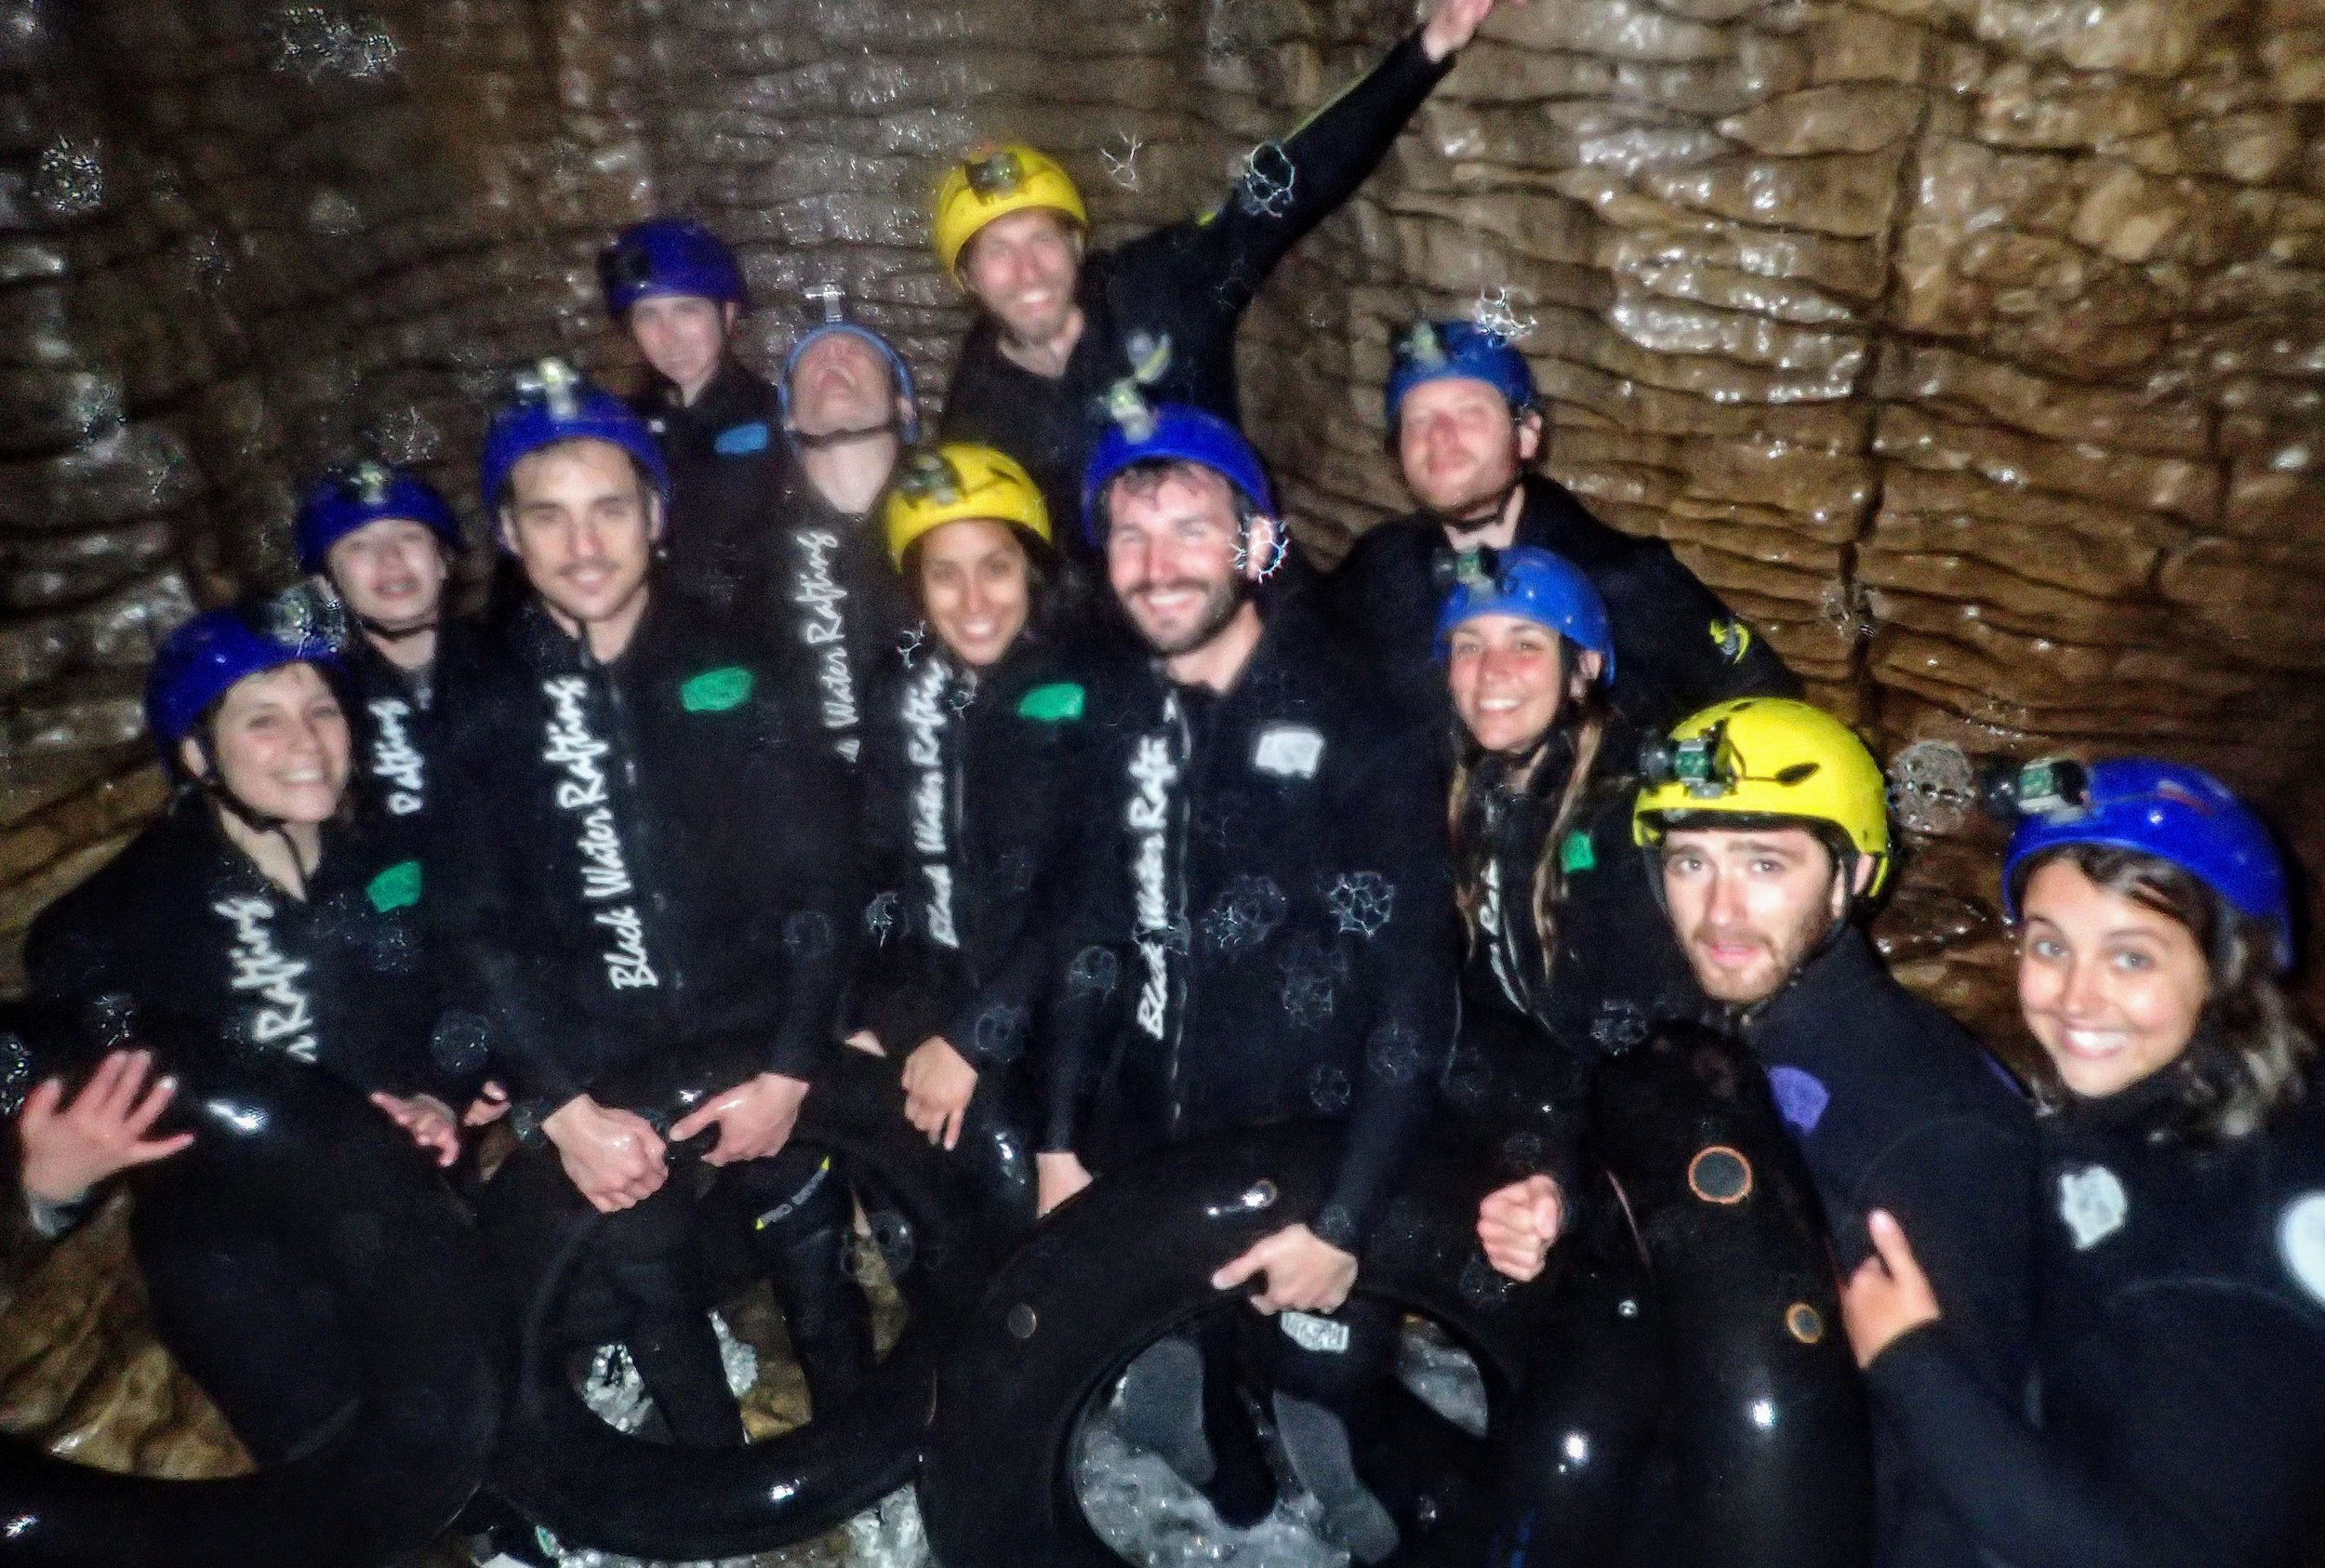 Blurry cave picture (that's us on the lower right) - Courtesy of the  Legendary Blackwater Rafting Co.